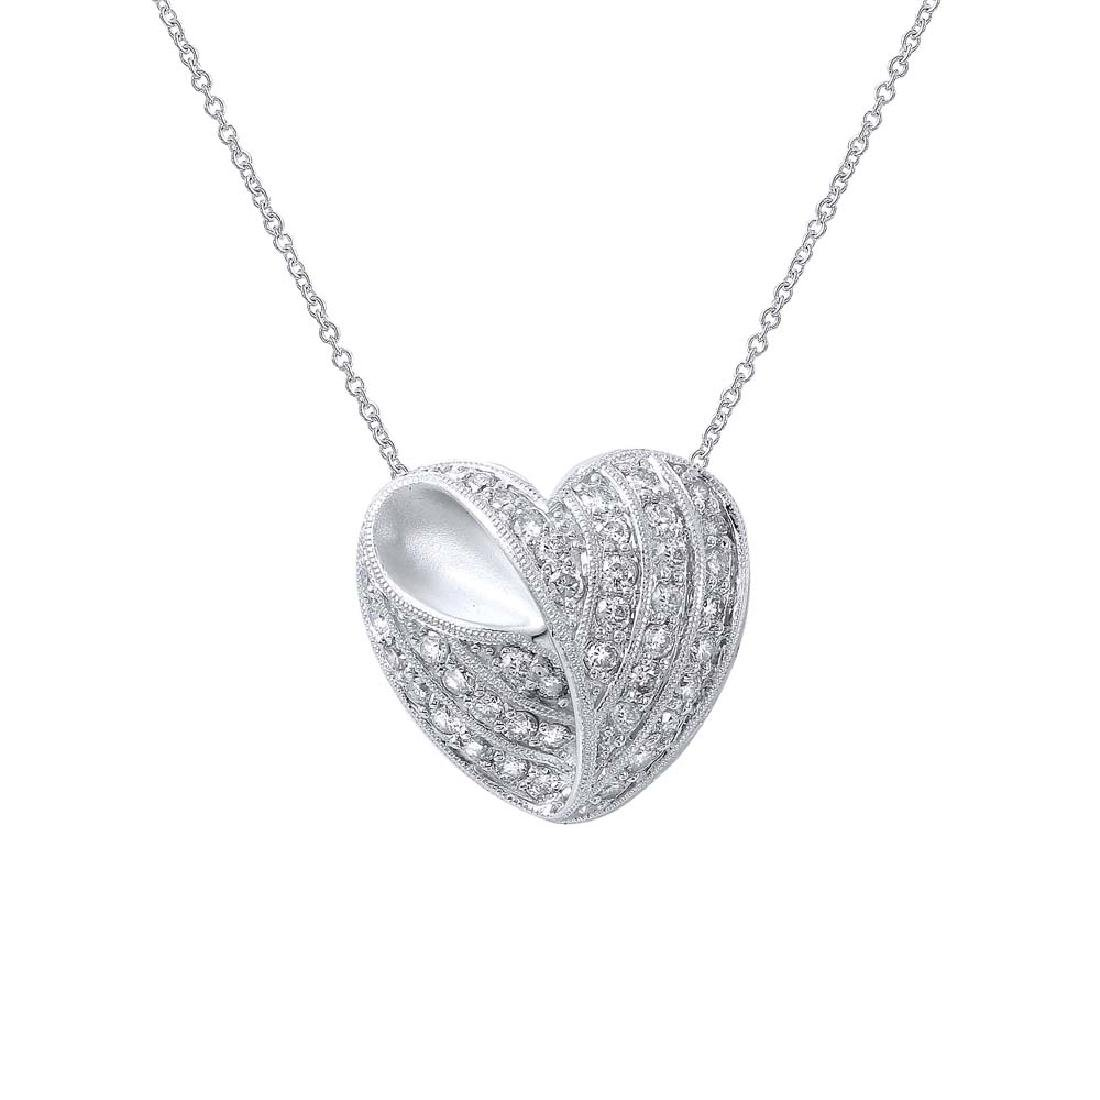 Genuine 0.7 TCW 14K White Gold Ladies Necklace